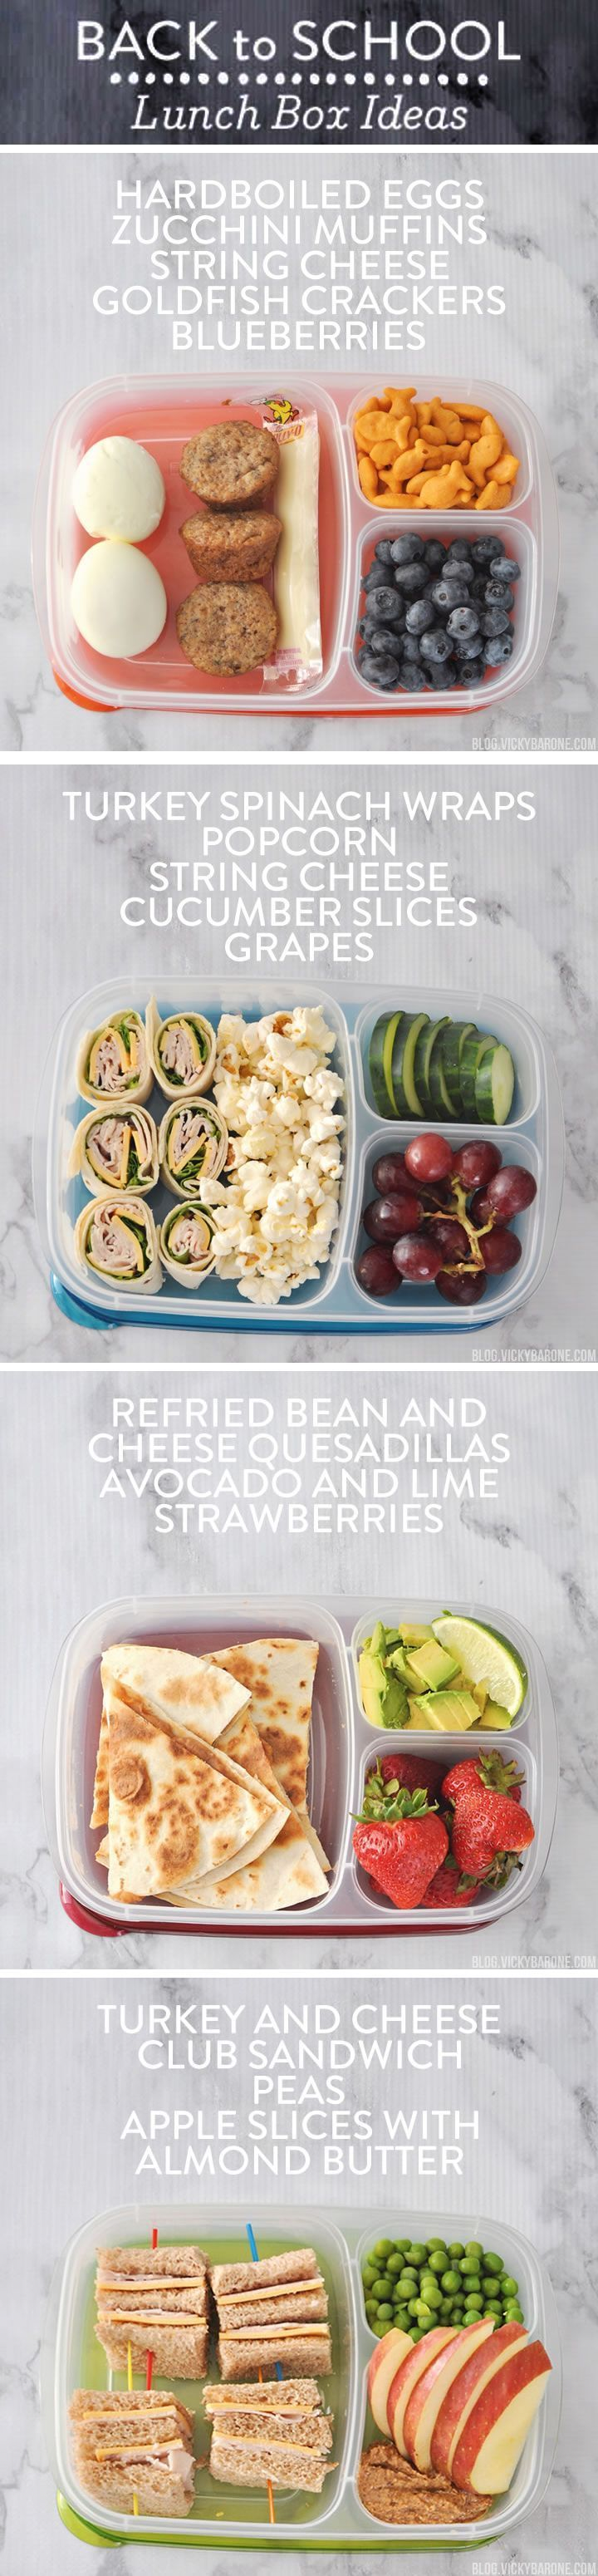 Top 25 Best Healthy School Lunches Ideas On Pinterest Healthy Lunches For Kids Healthy School Snacks And Snacks For School